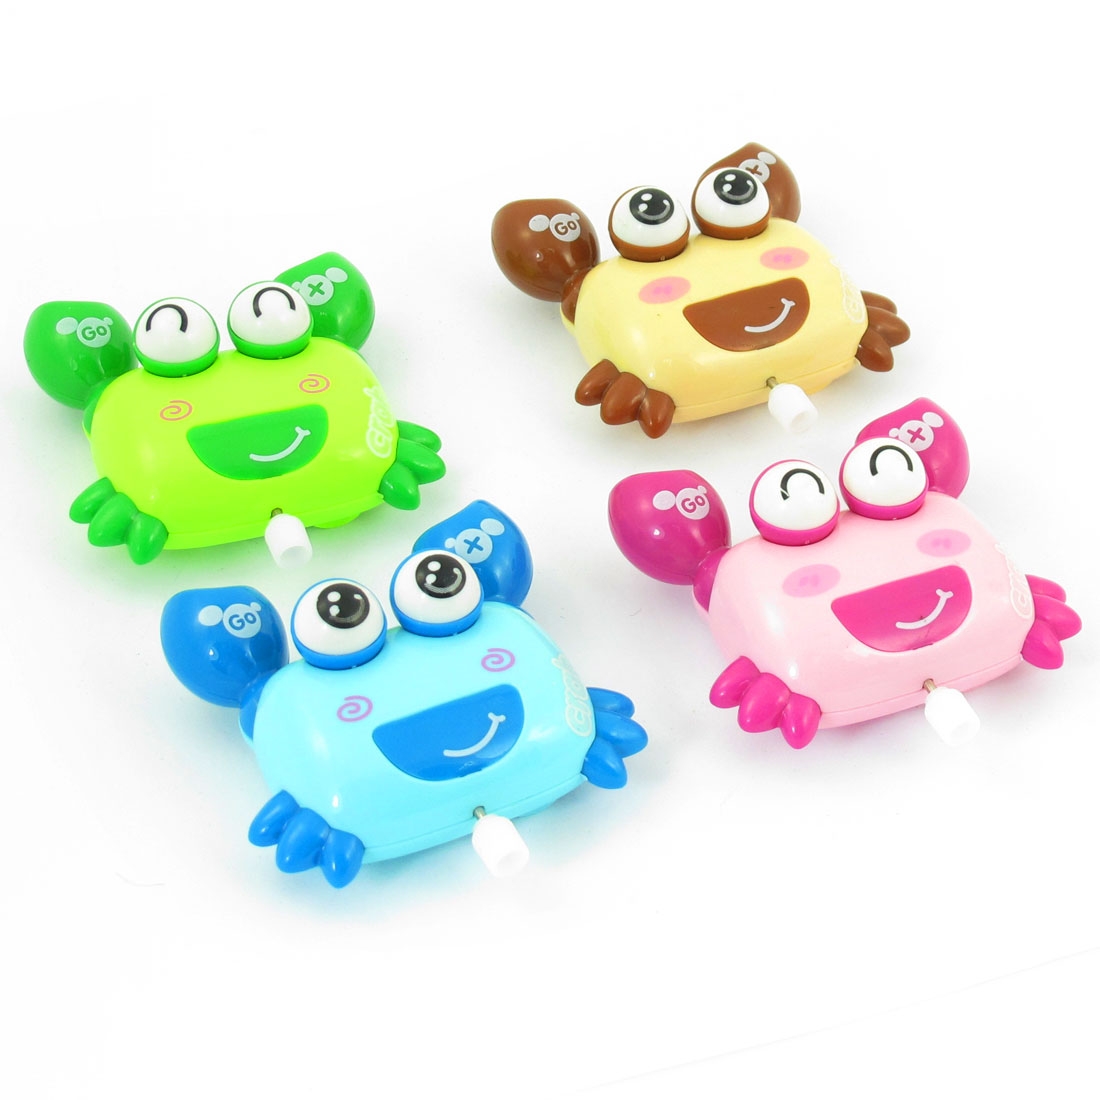 4 Pcs Assorted Color Plastic Crab Design Wind Up Toys for Kids